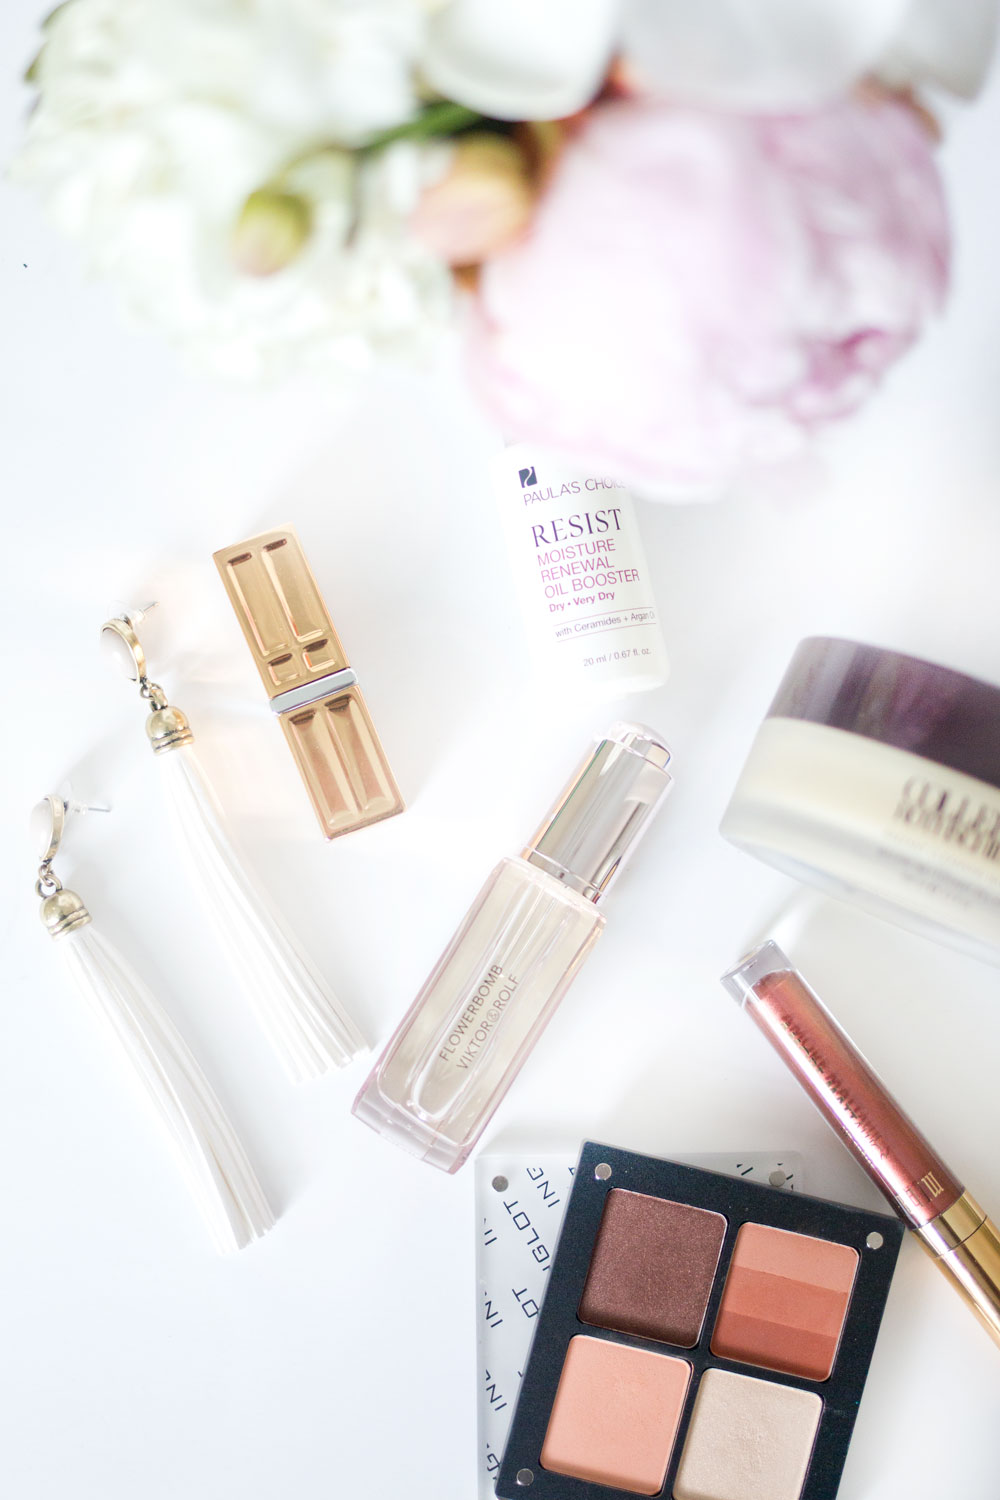 Spring Beauty Favorites: Viktor + Rolf Precious Oil, Adia Kibur Stella Tassel Earrings, and Inglot Eyeshadow // Hello Rigby Seattle Style & Beauty Blog